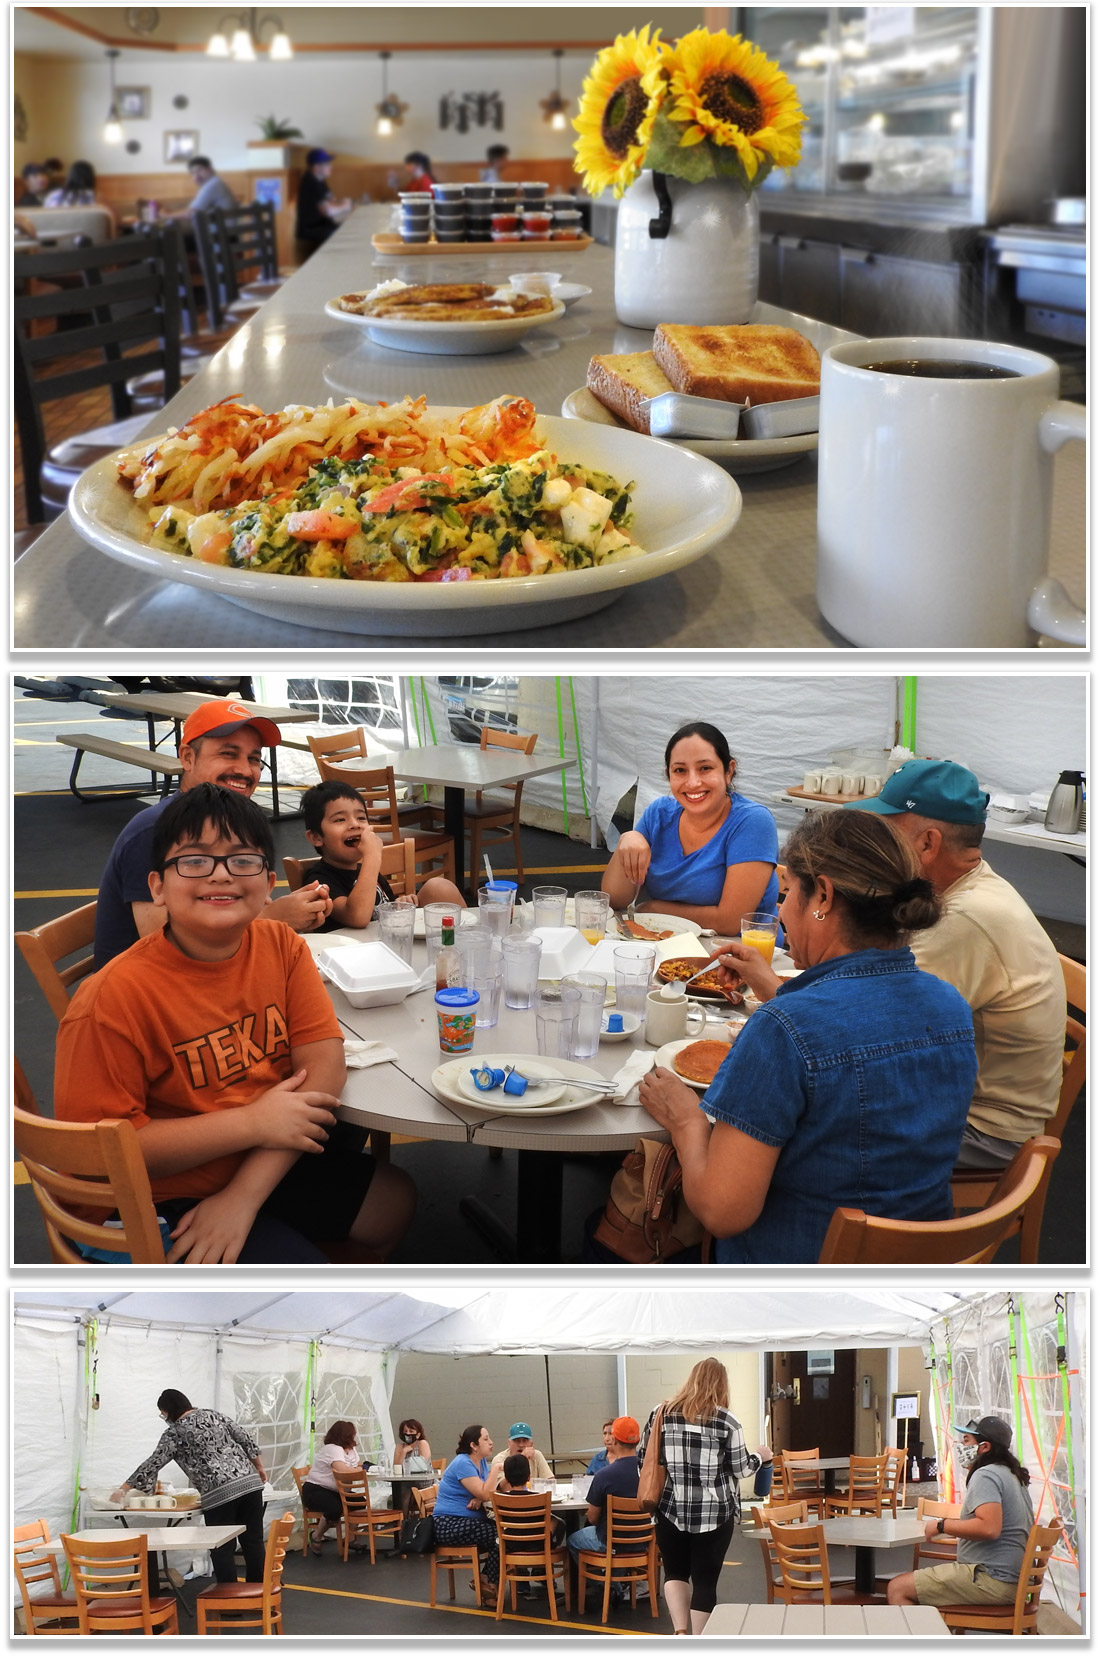 Photos of Andy's Restaurant in Crystal Lake, IL